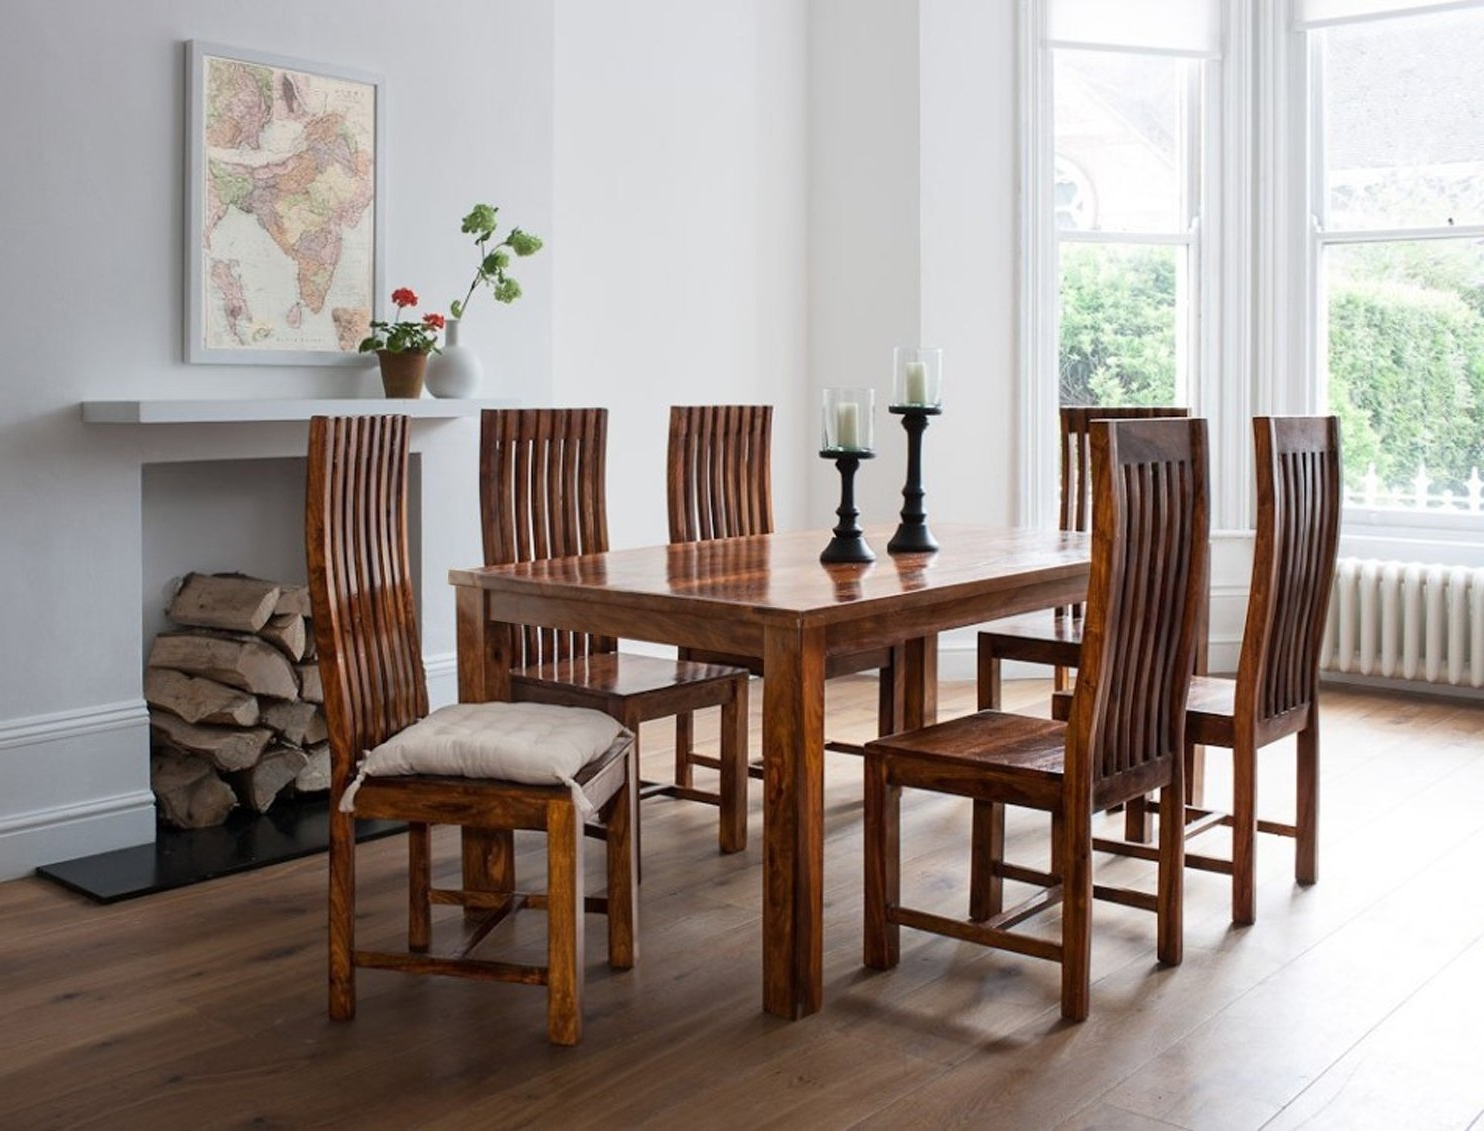 Dining Table Sets With 6 Chairs Within Well Liked Lifeestyle Handcrafted Sheesham Wood 6 Seater Dining Set (Honey (View 11 of 25)